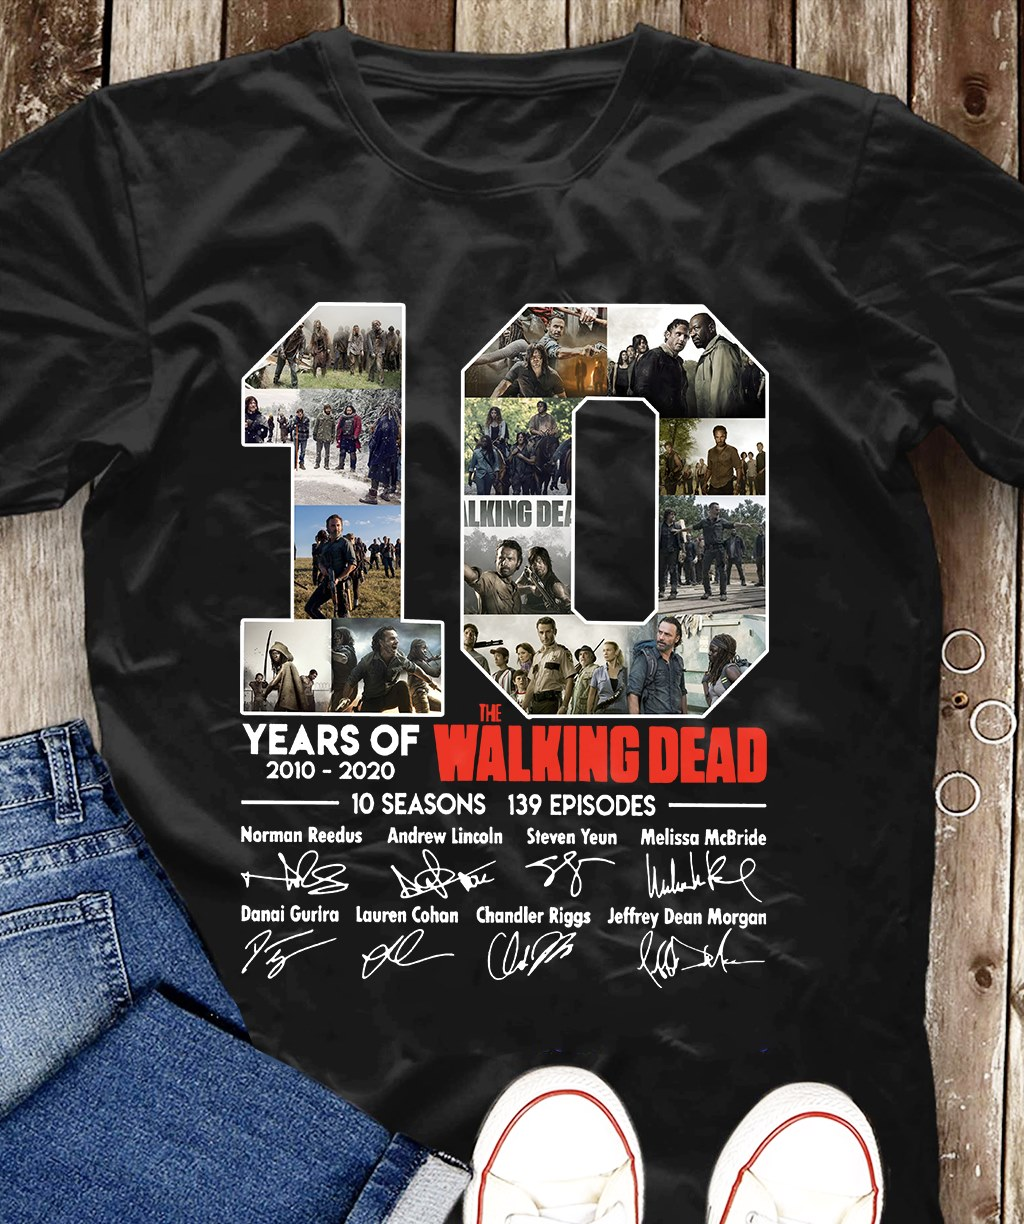 10 Years Of The Walking Dead 2010 - 2020 And Signatures Sweatshirt